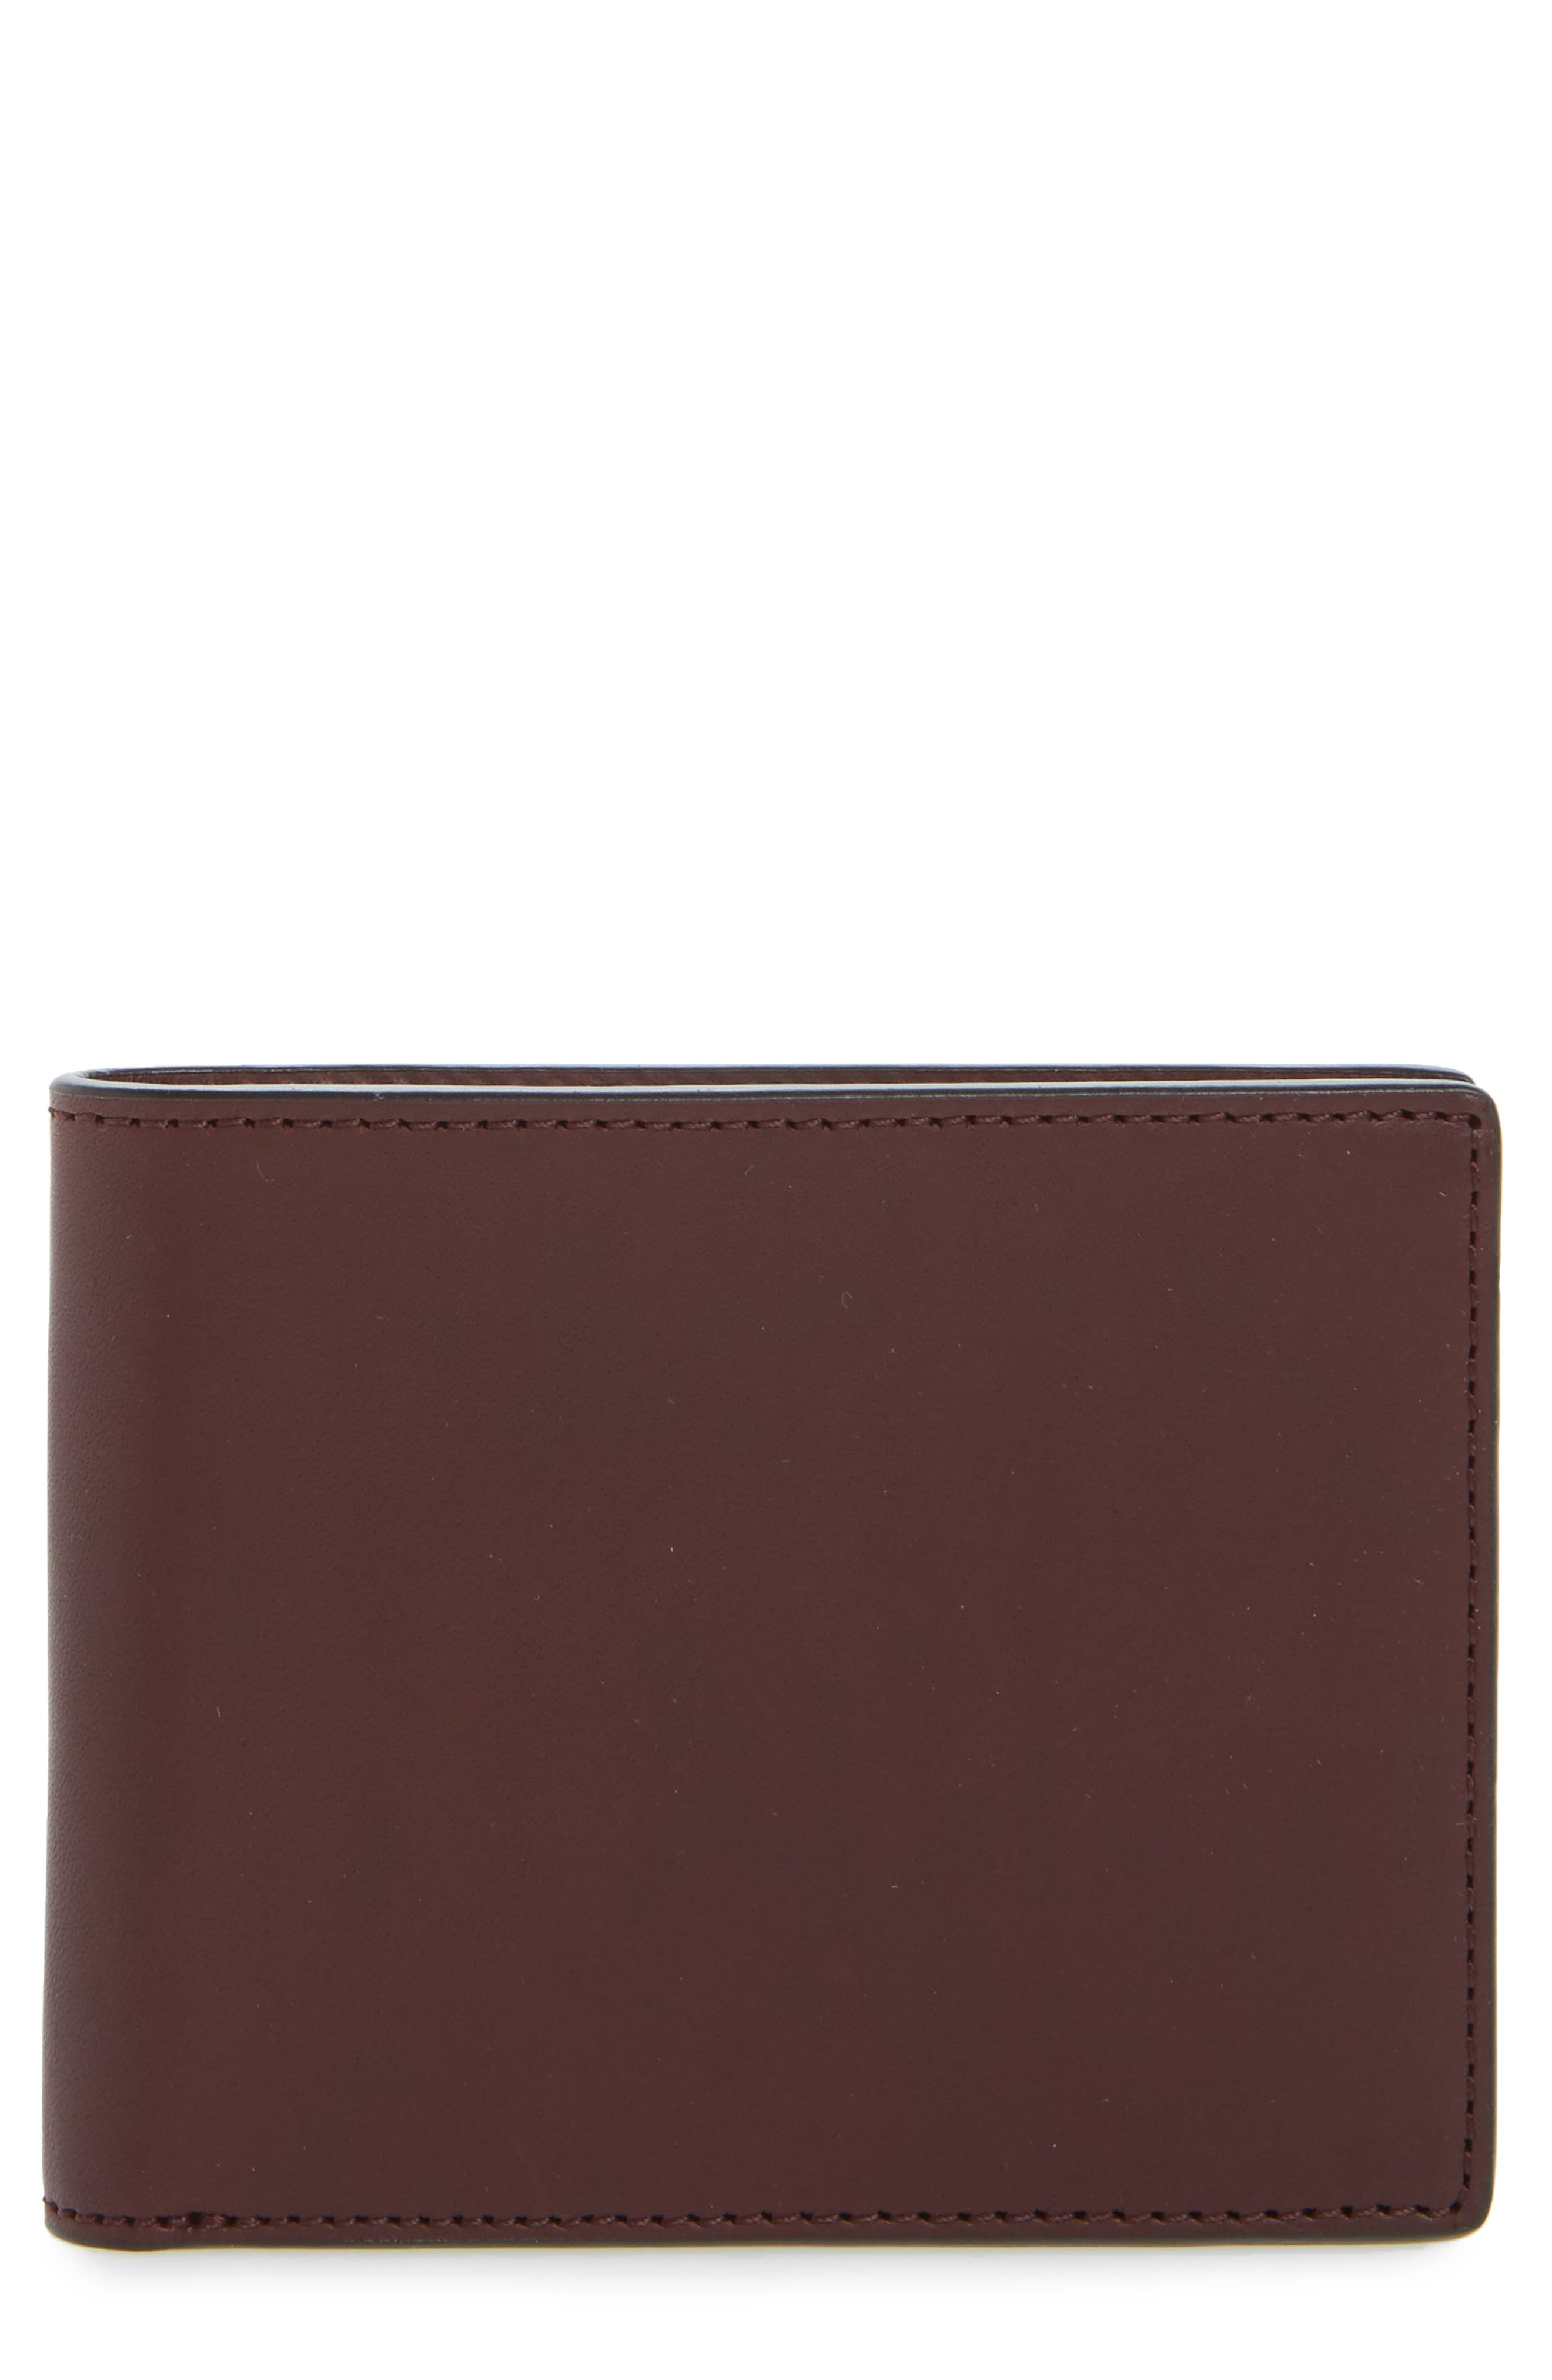 Hampshire Bifold Leather Wallet,                         Main,                         color, 998